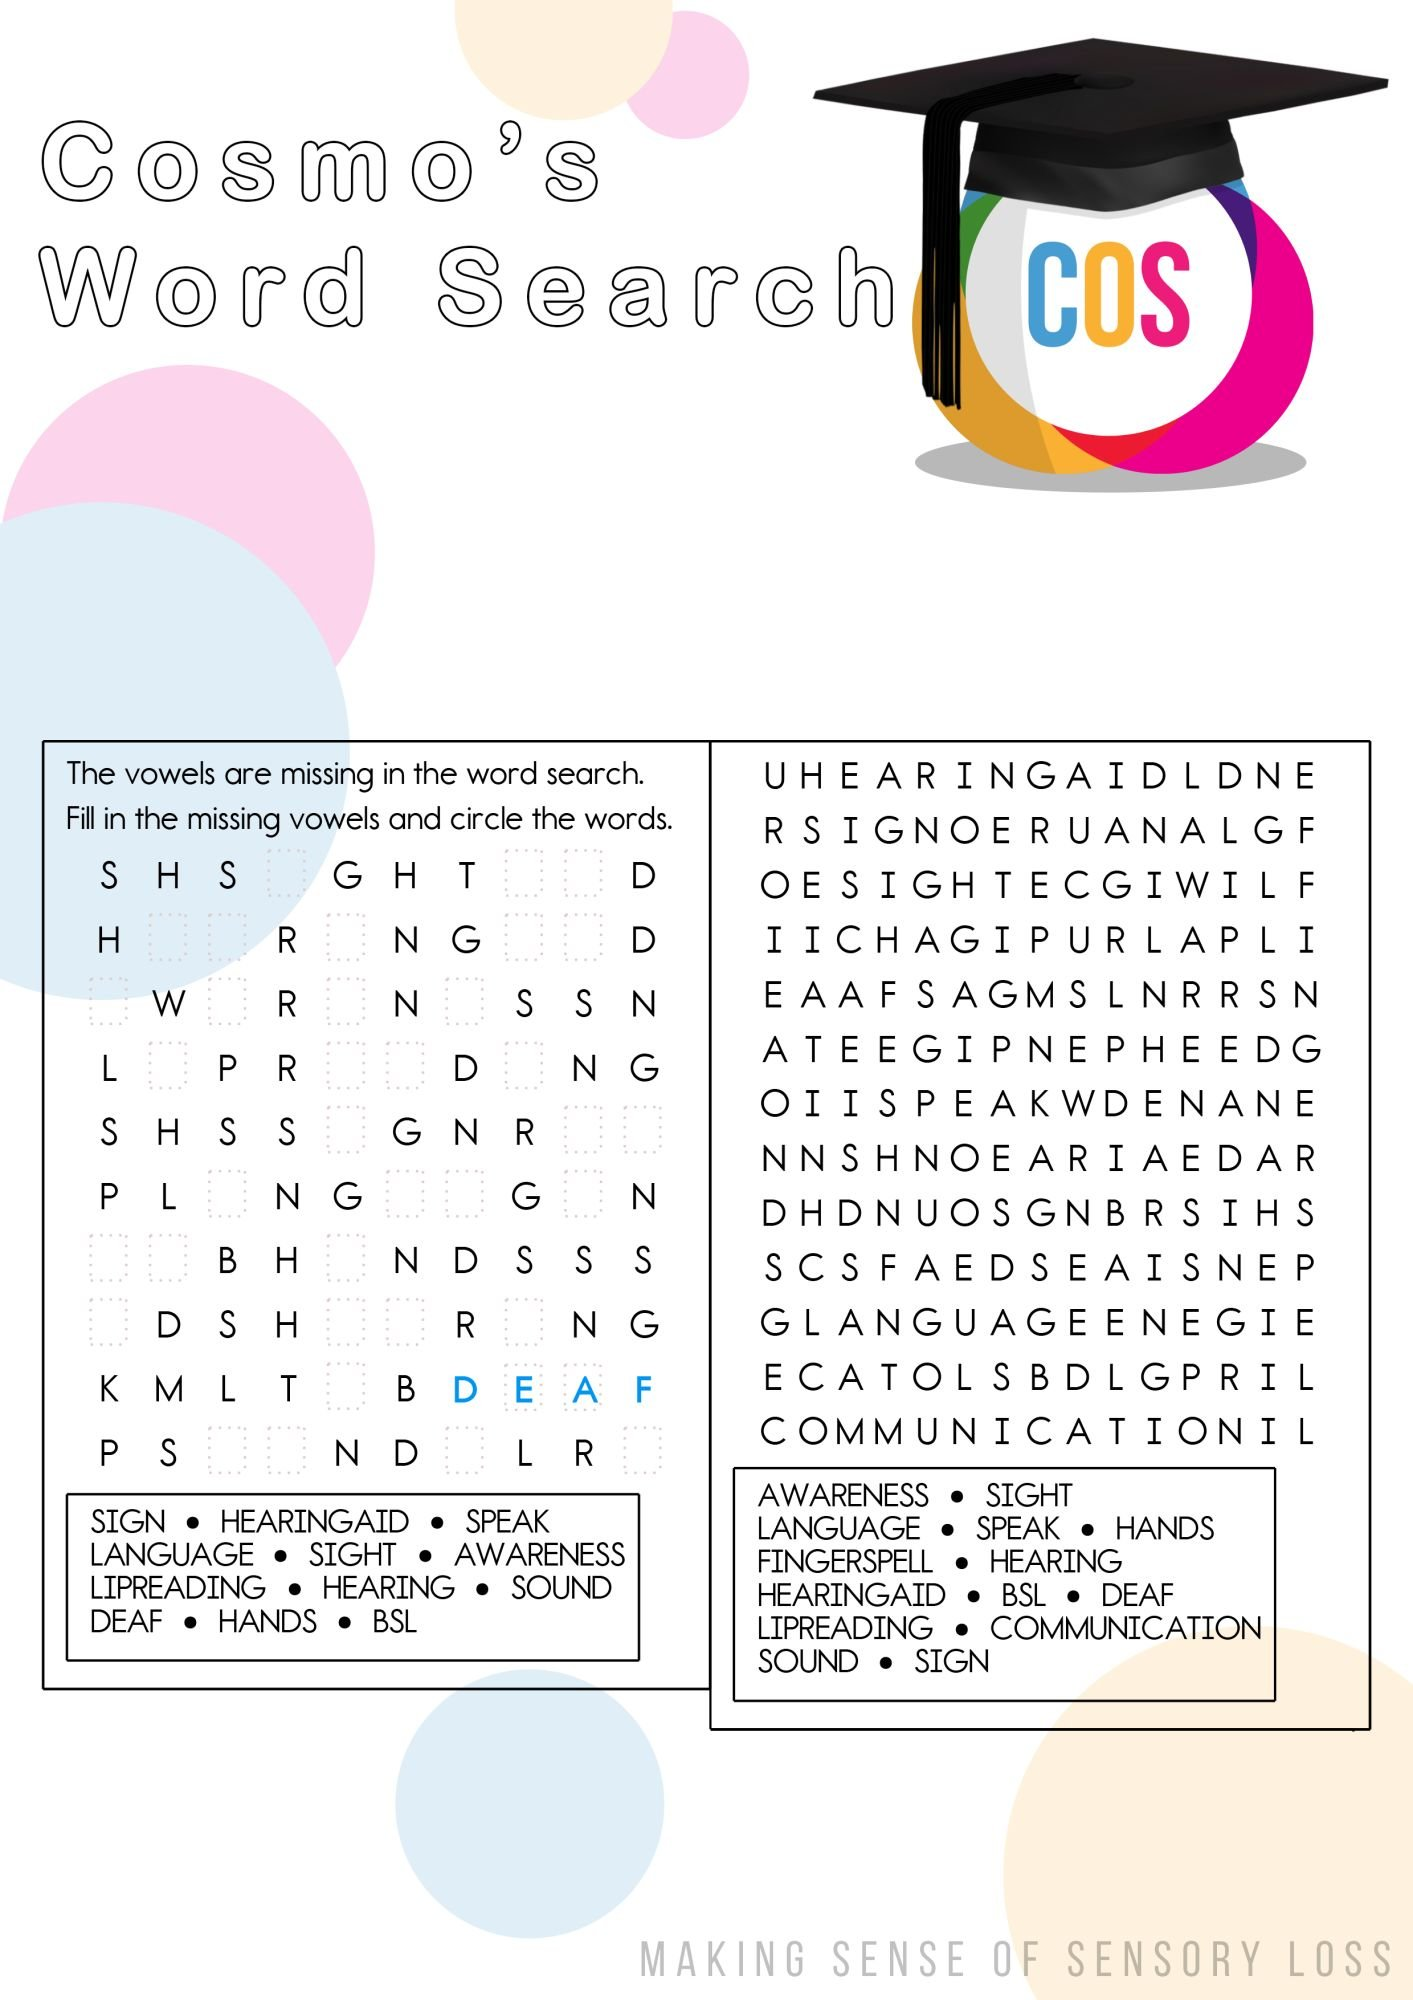 Cosmo's Word Searches - Centre of Sign Sight Sound